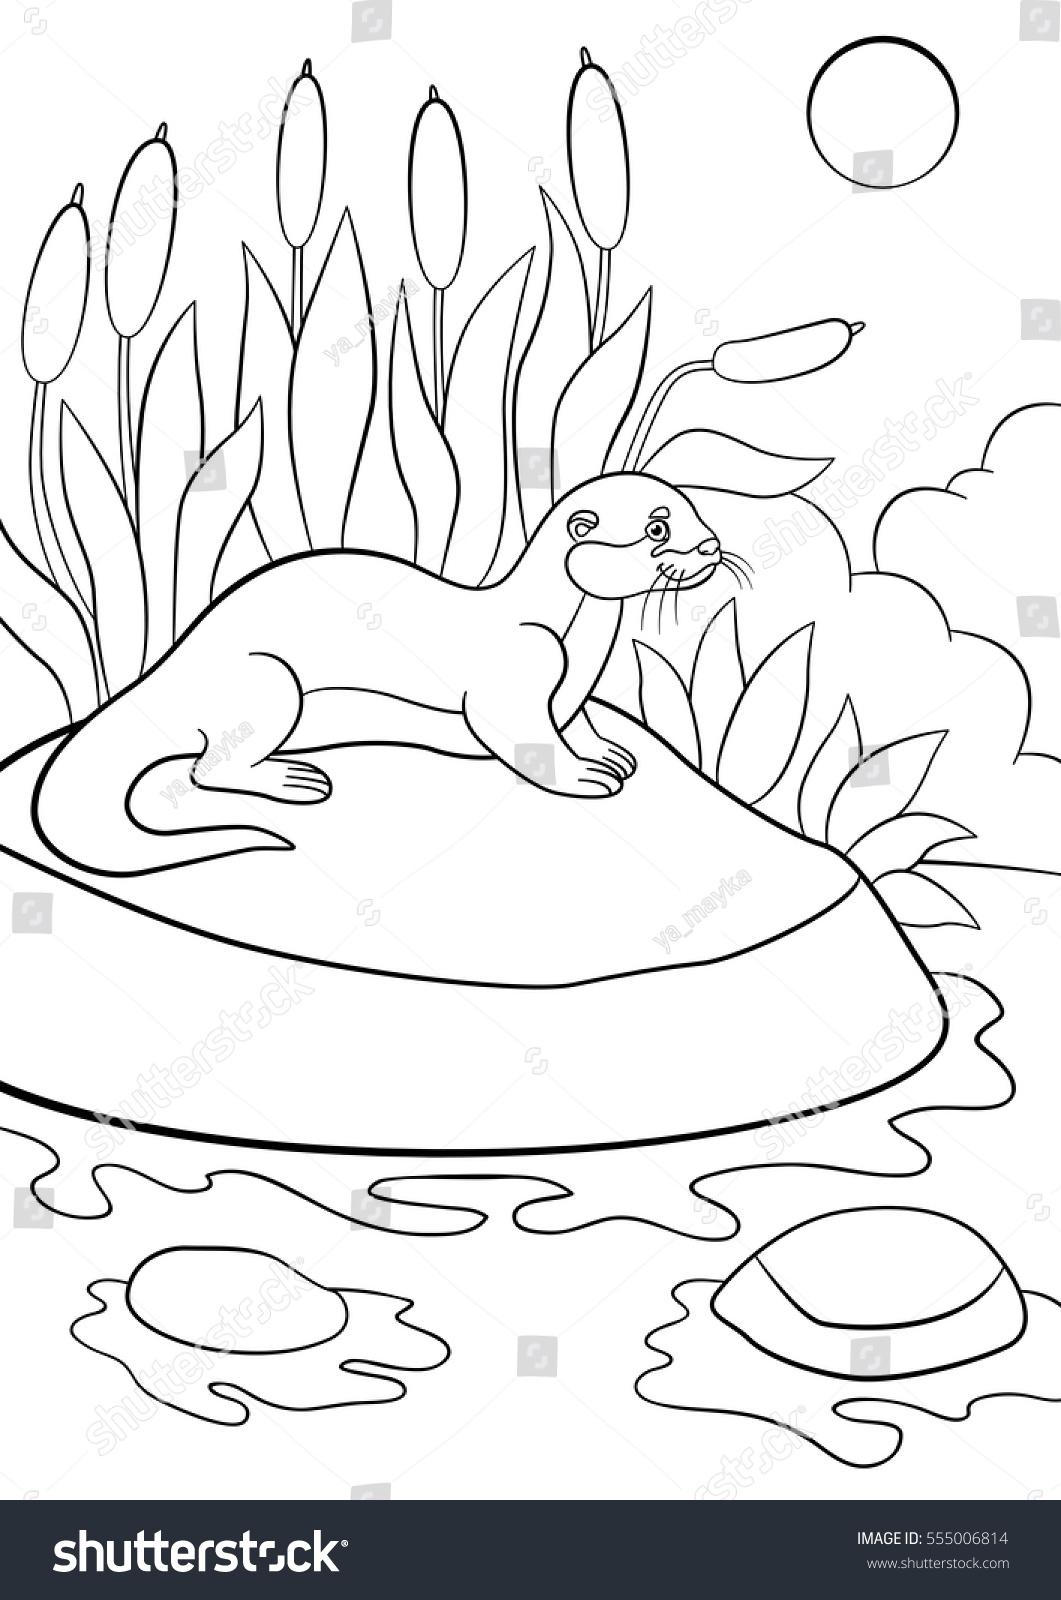 Coloring Pages Little Cute Otter Stands Stock Vector 555006814 ...